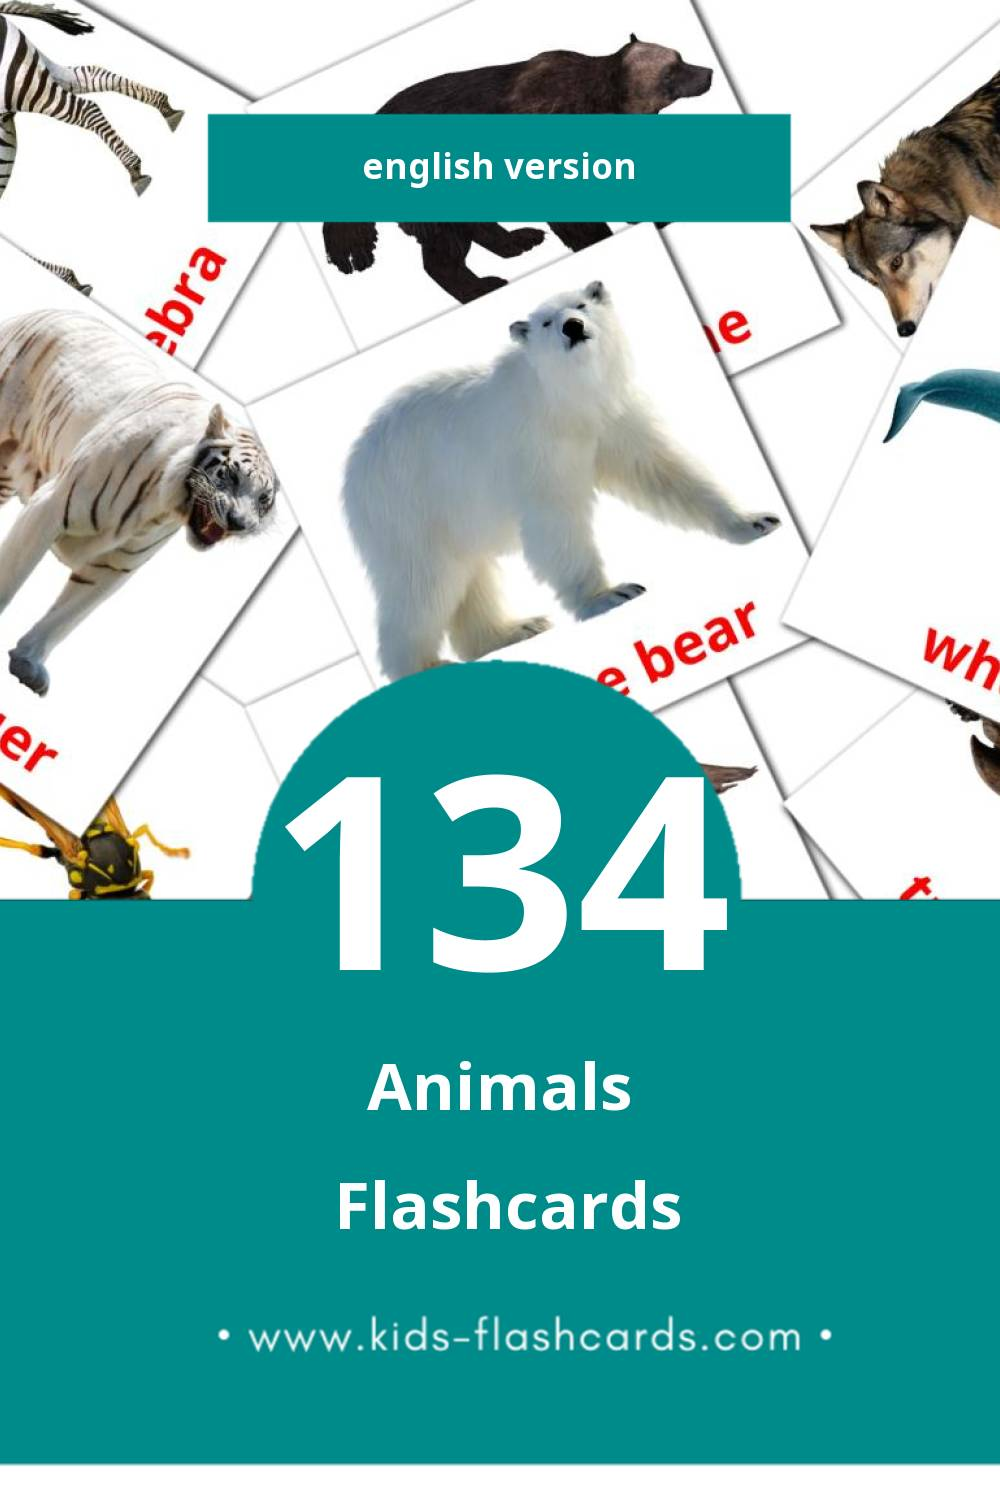 Visual Animals Flashcards for Toddlers (134 cards in English)